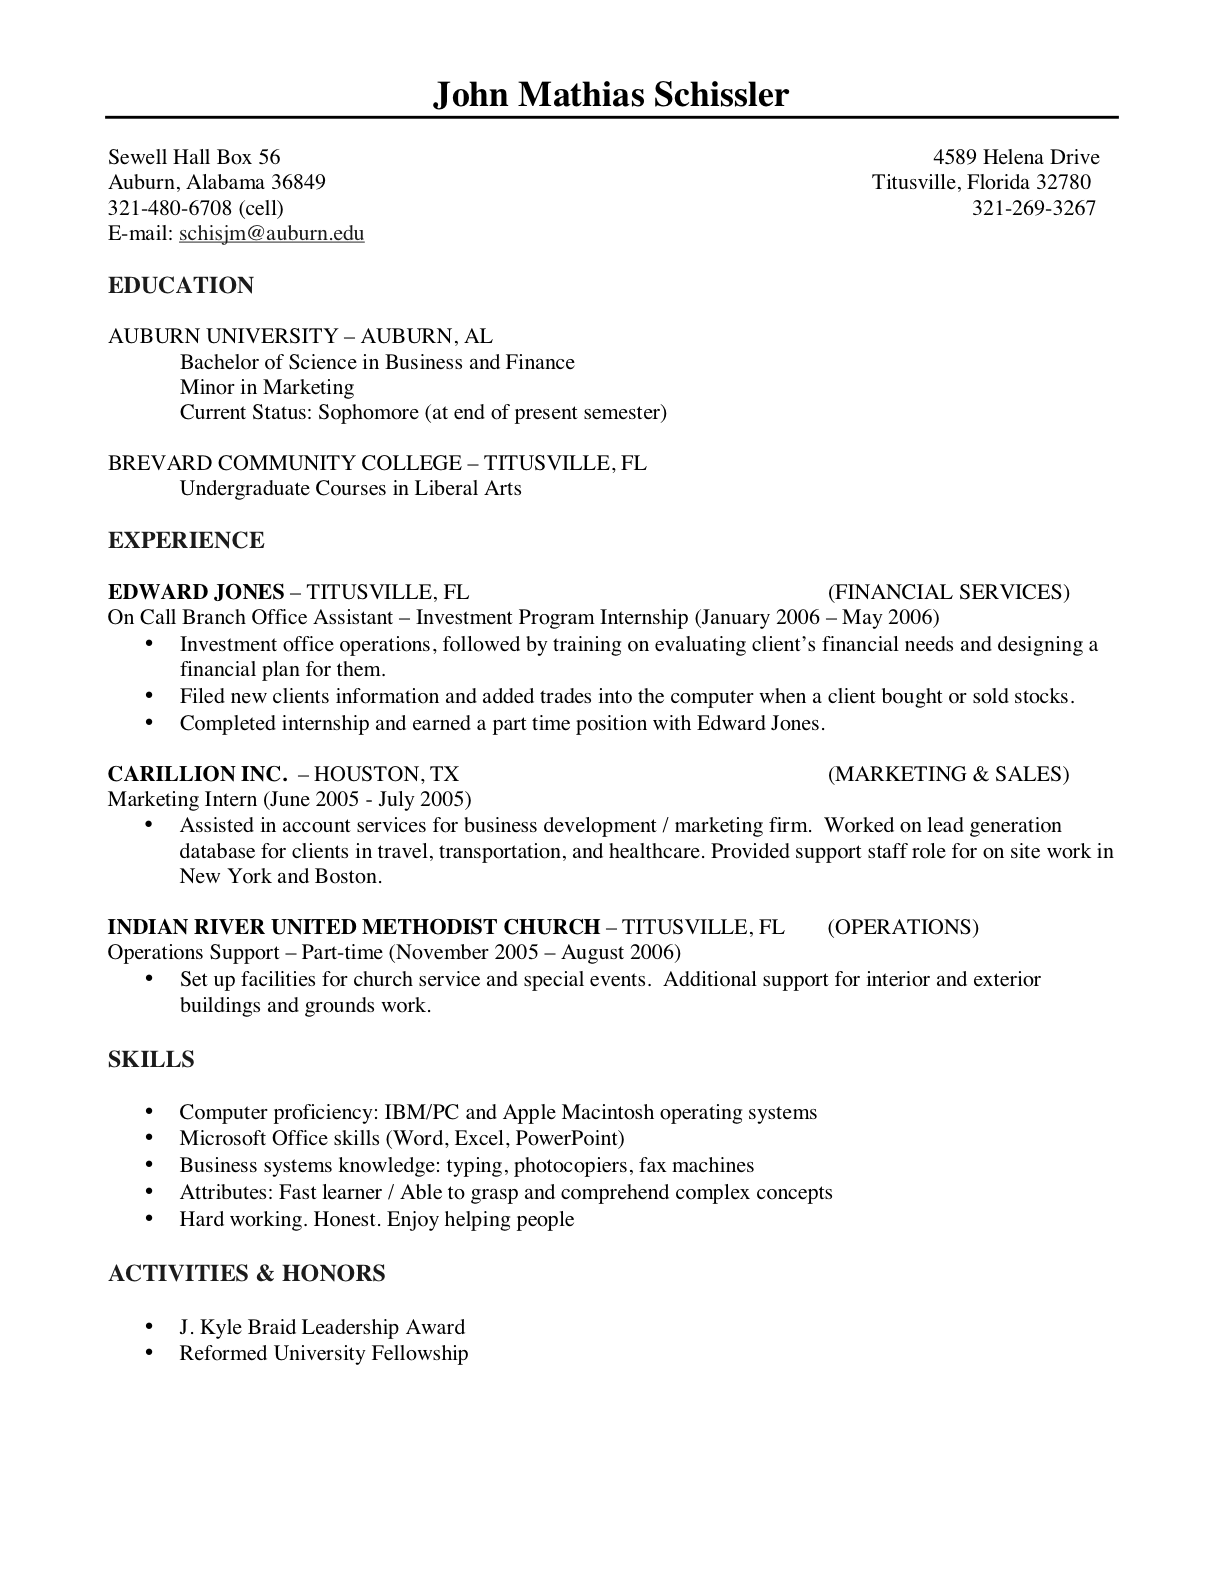 copy a resumes - Asafon.ggec.co